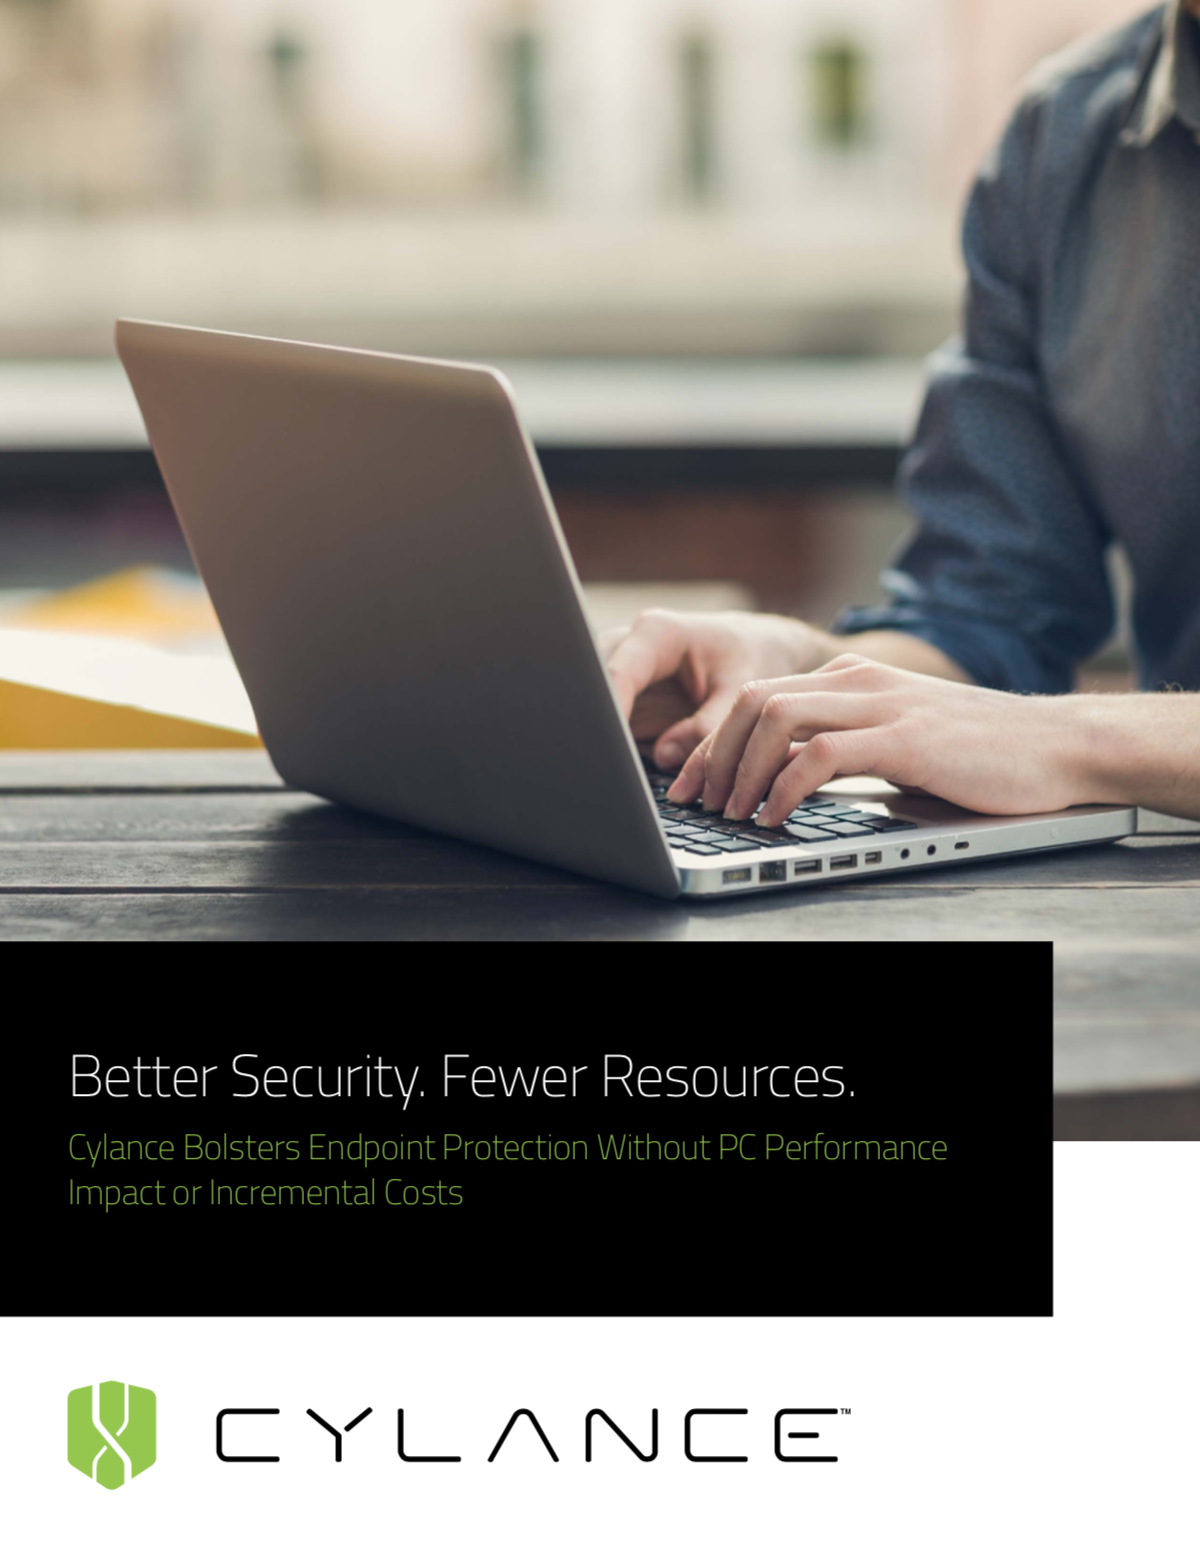 Better Security, Fewer Resources - Cylance Bolsters Endpoint Protection Without PC Performance Impact or Incremental Costs